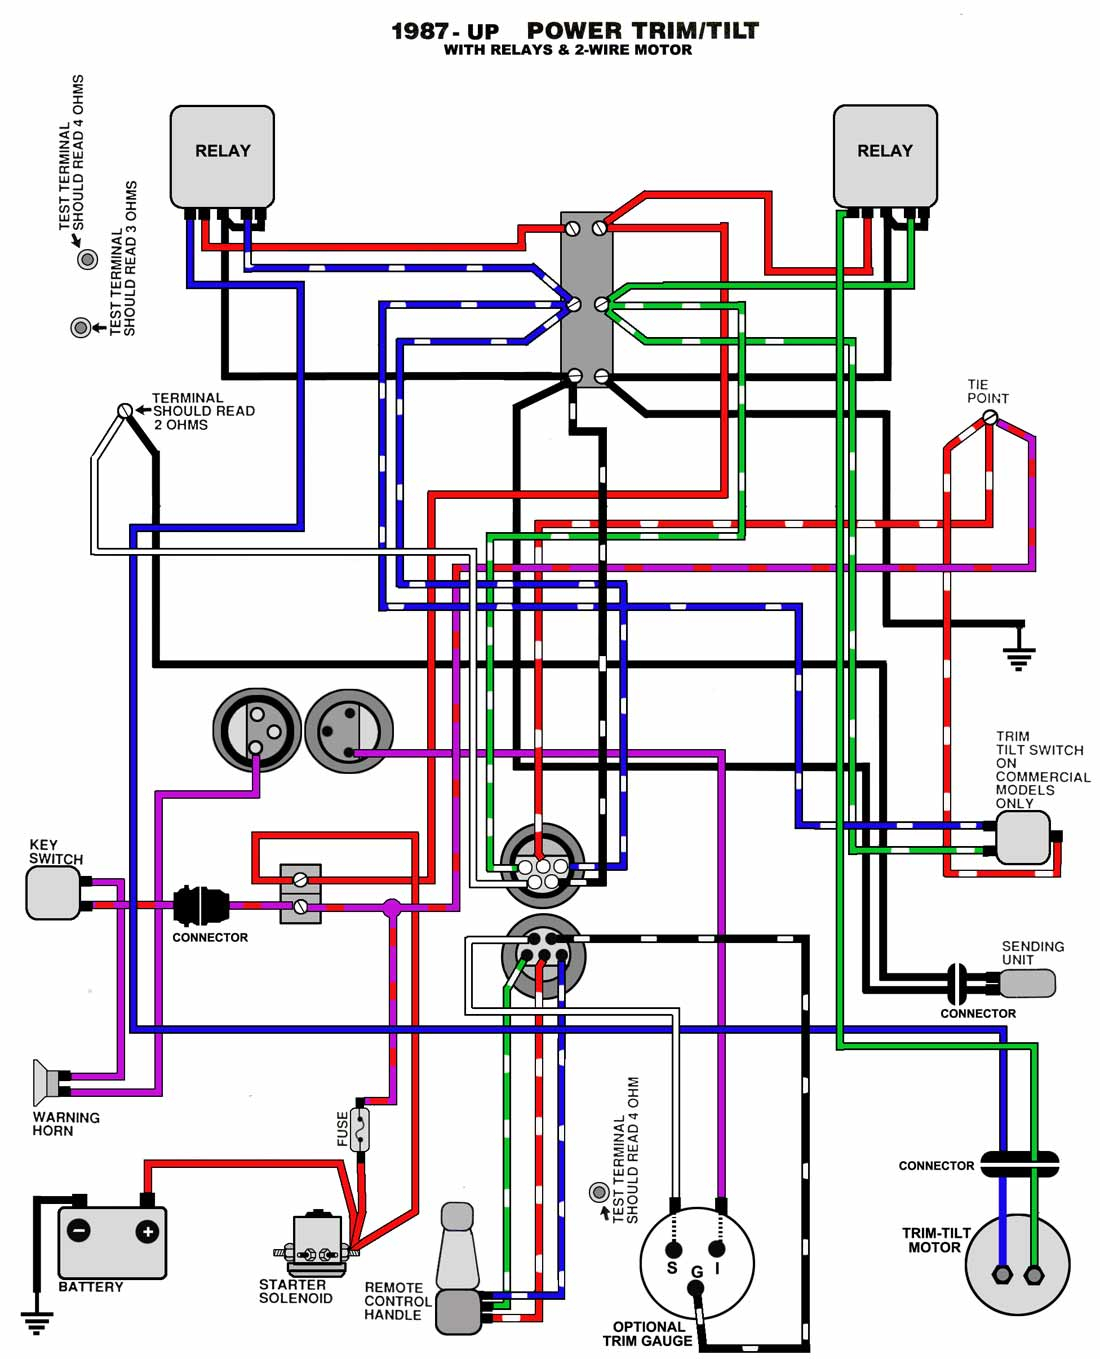 567b8e 115 yamaha outboard gauge wiring diagram free picture yamaha outboard tilt and trim gauge wiring diagram yamaha outboard wiring diagram gauges #11